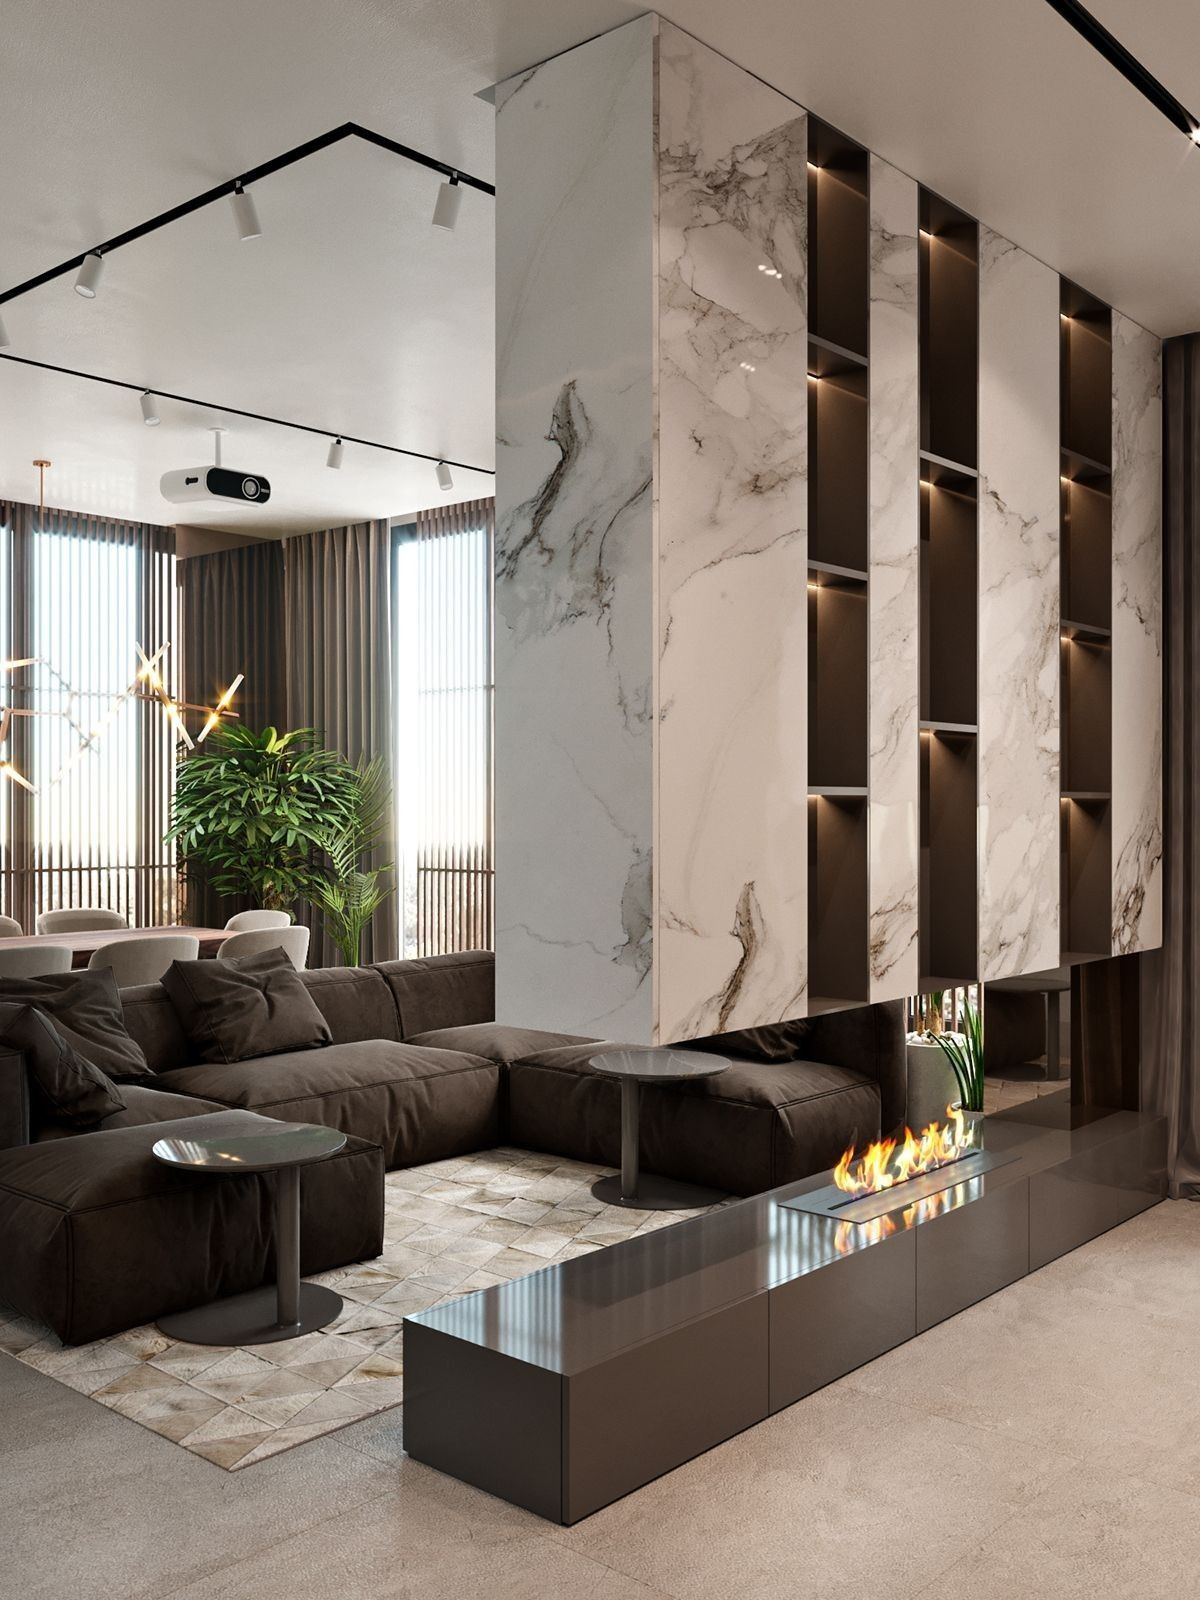 Restaurant design pent house interior architecture luxury exterior also pin by on in pinterest rh